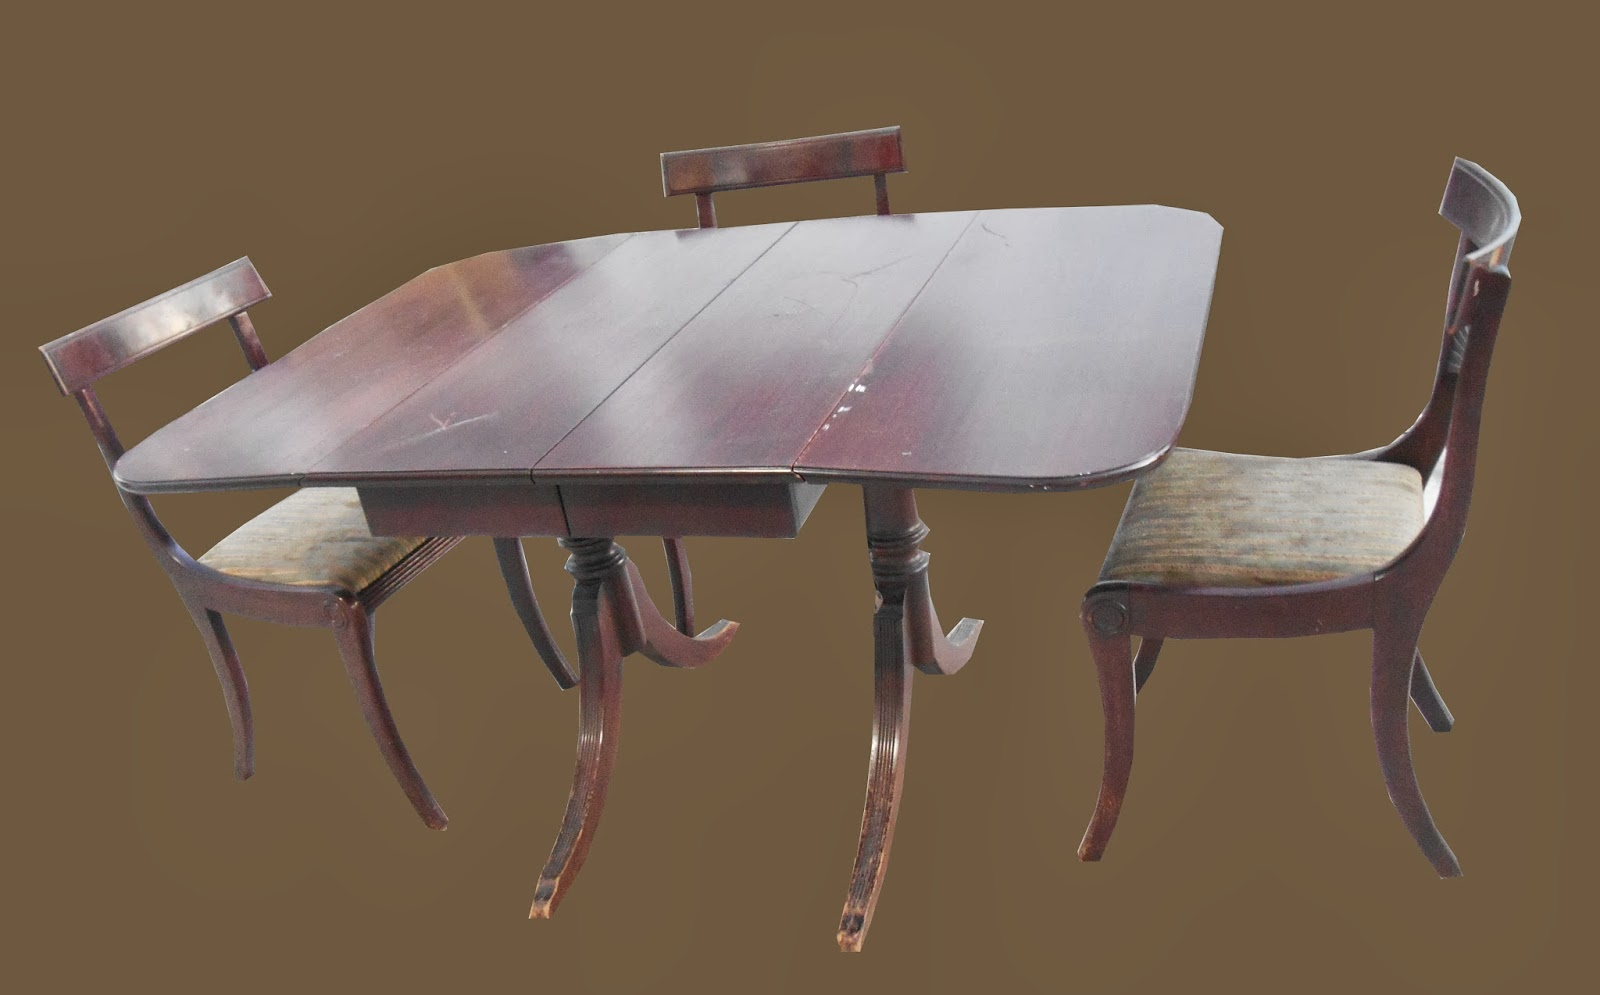 Miraculous Uhuru Furniture Collectibles Duncan Phyfe Style Drop Leaf Home Interior And Landscaping Ologienasavecom